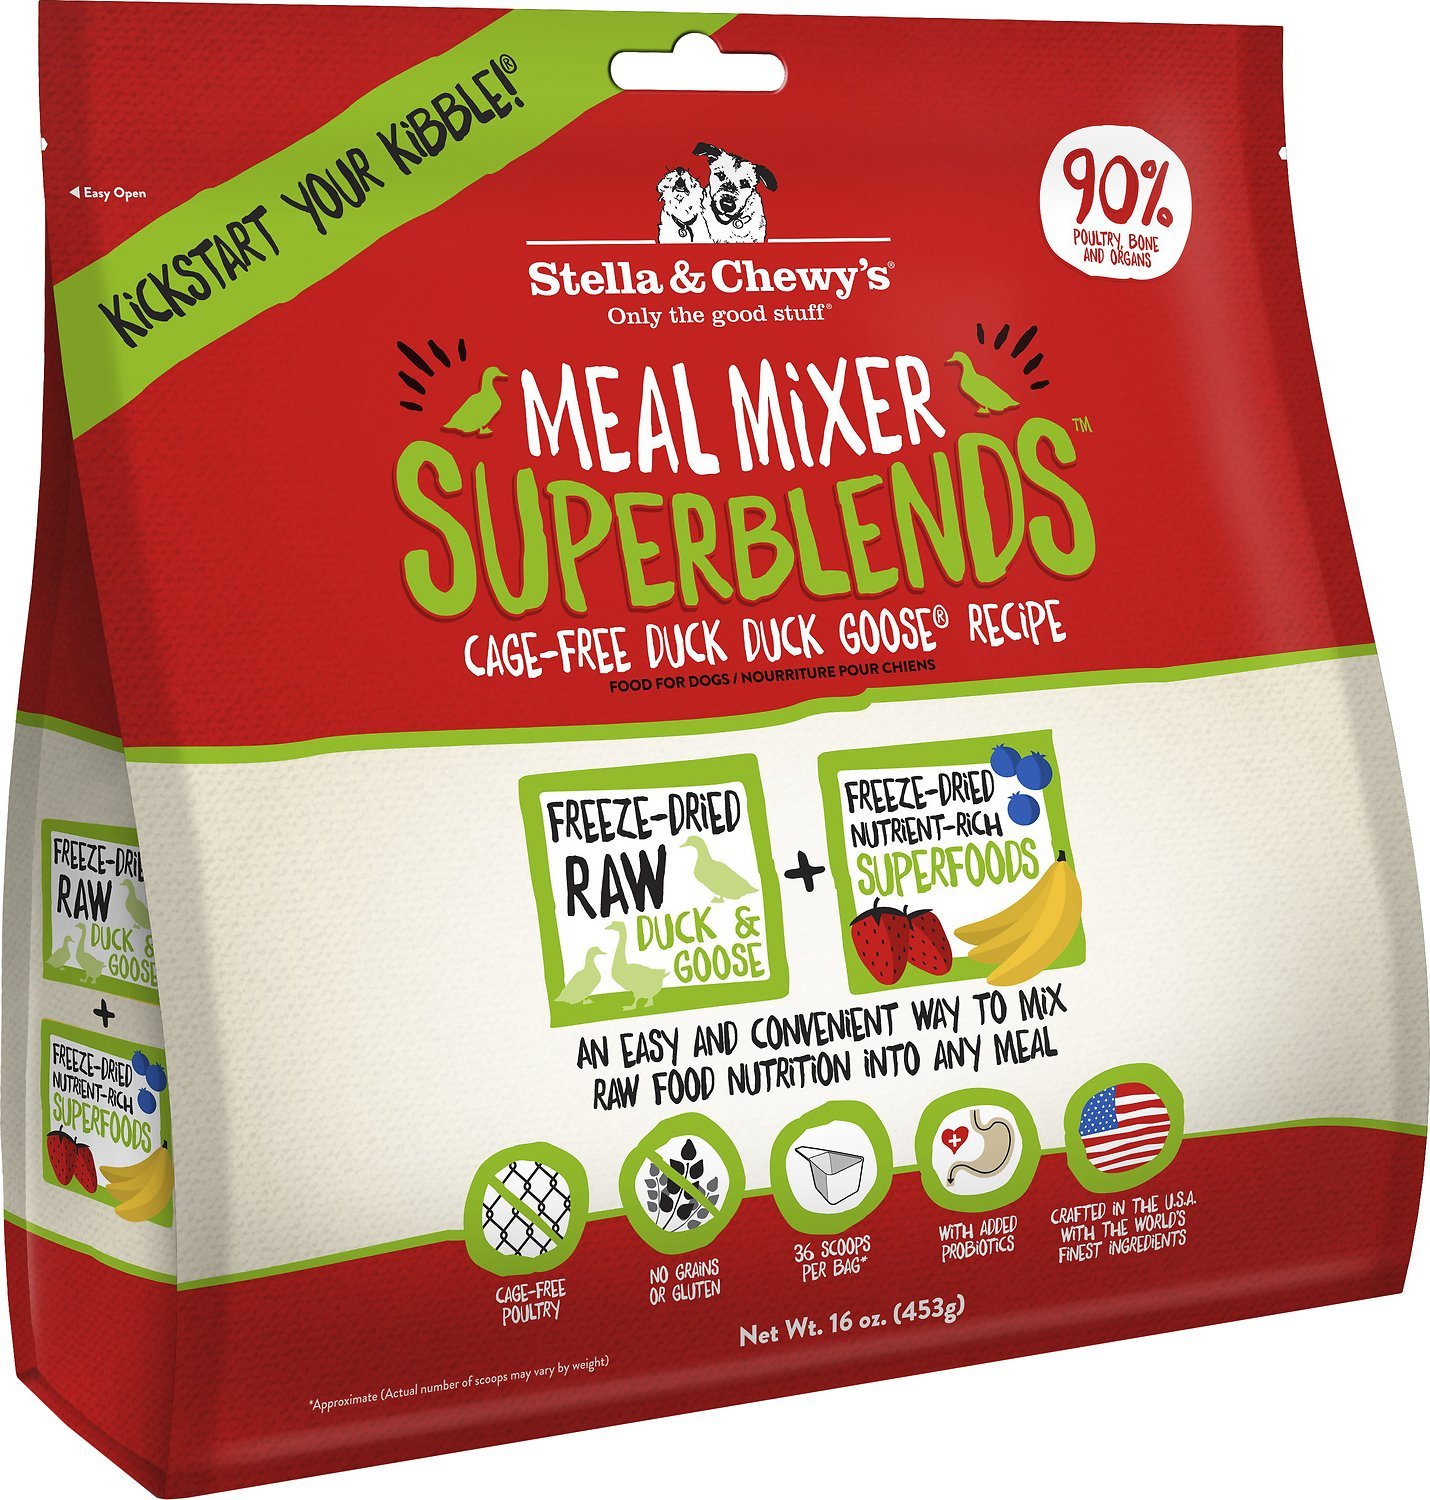 Stella & Chewy's SuperBlends Cage-Free Duck Duck Goose Recipe Meal Mixers Grain-Free Freeze-Dried Dog Food Image